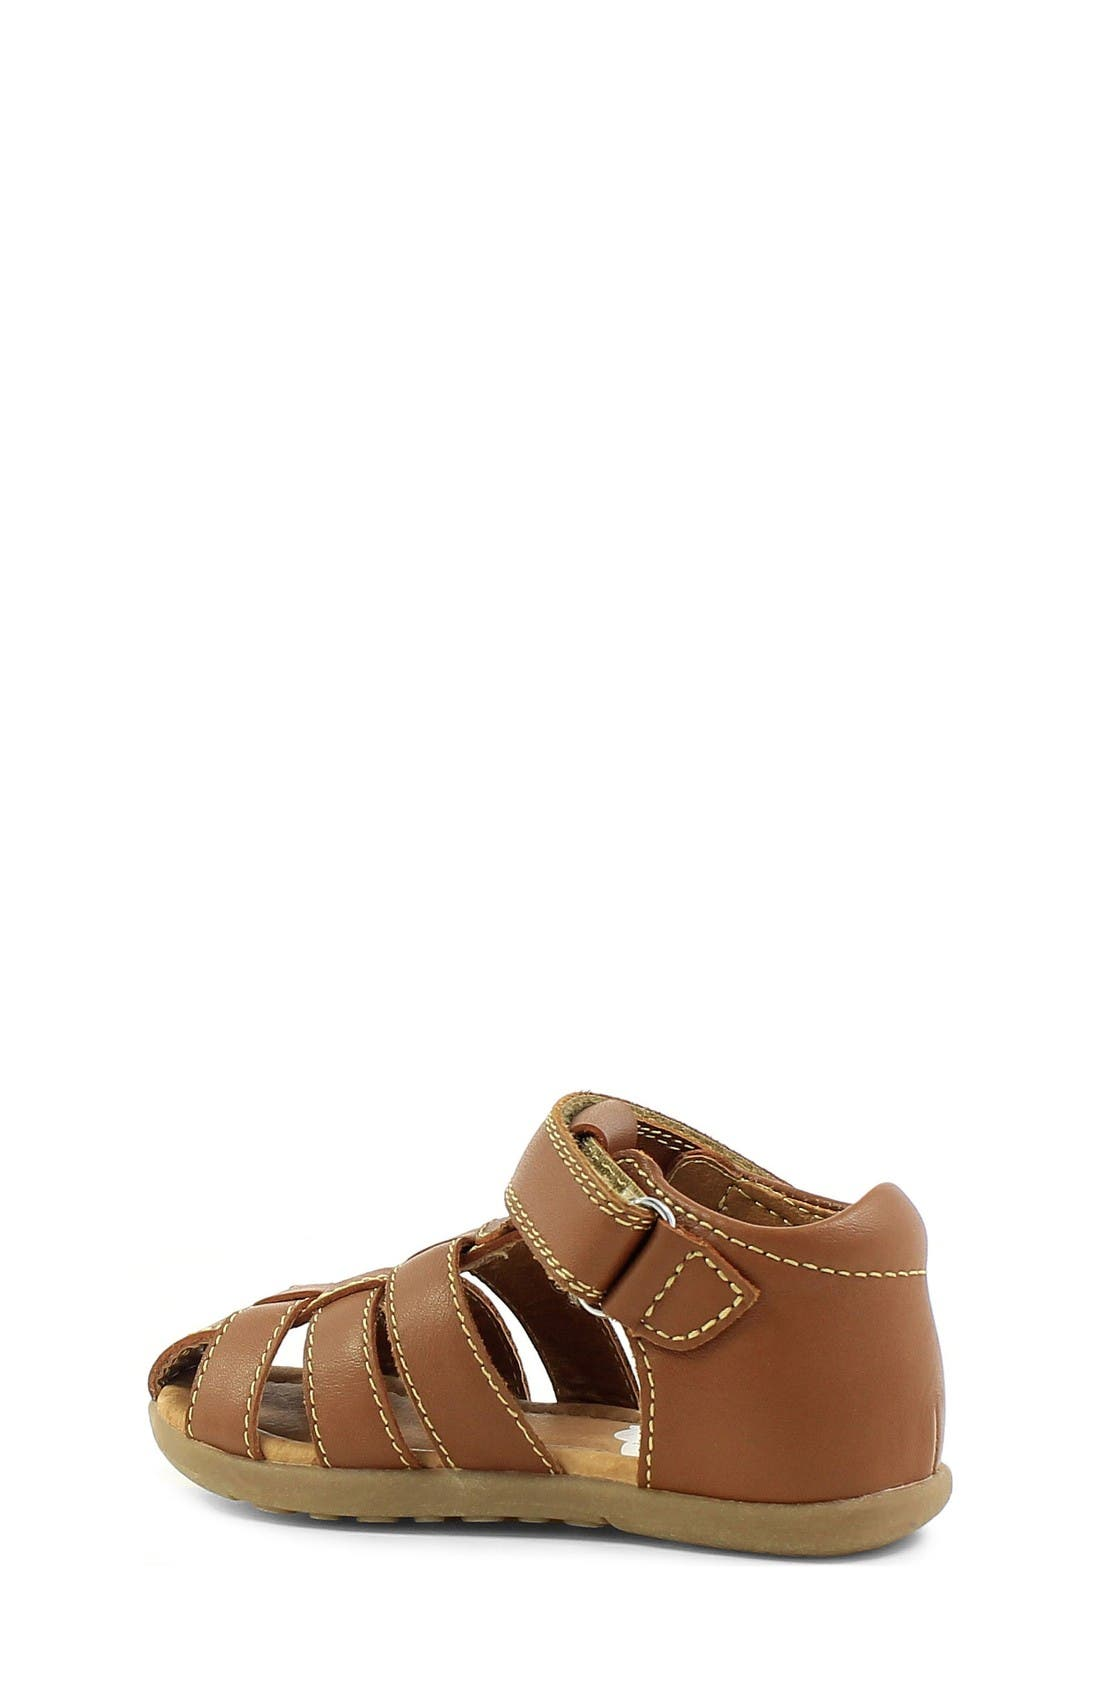 Ryker Sandal,                             Alternate thumbnail 2, color,                             Saddle Tan Leather